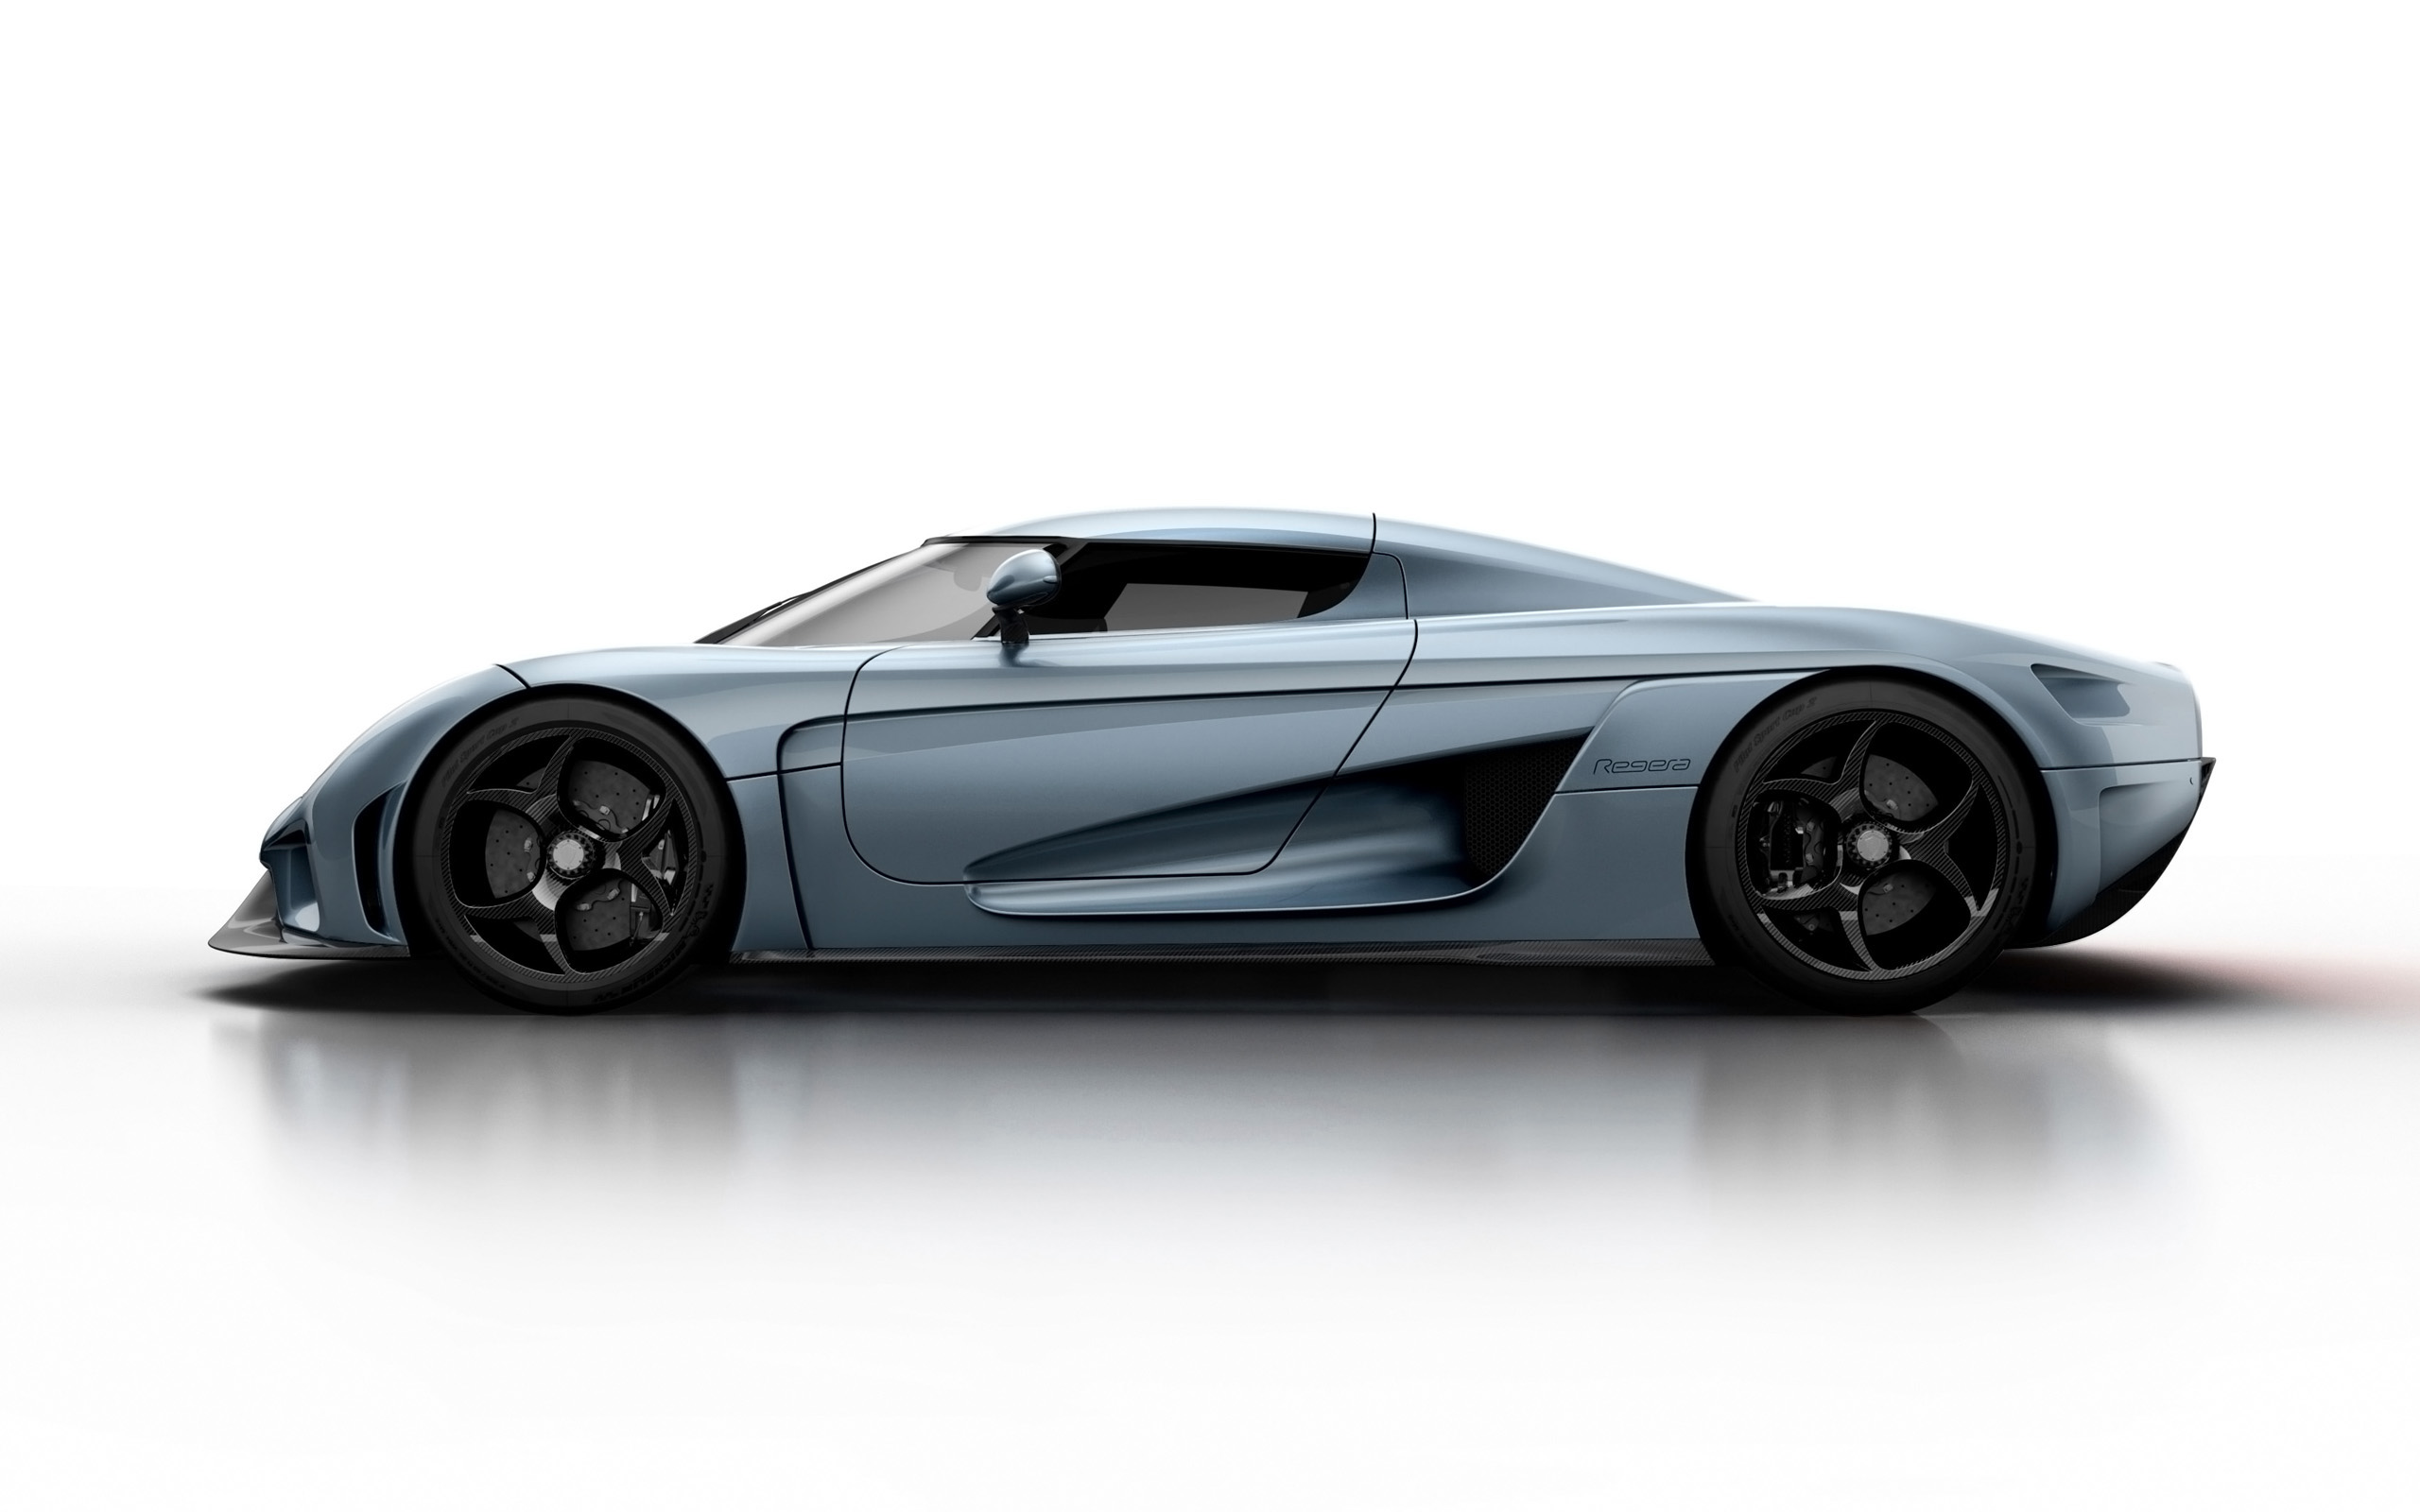 2015 Koenigsegg Regera Side View Wallpaper 47491 2560x1600px